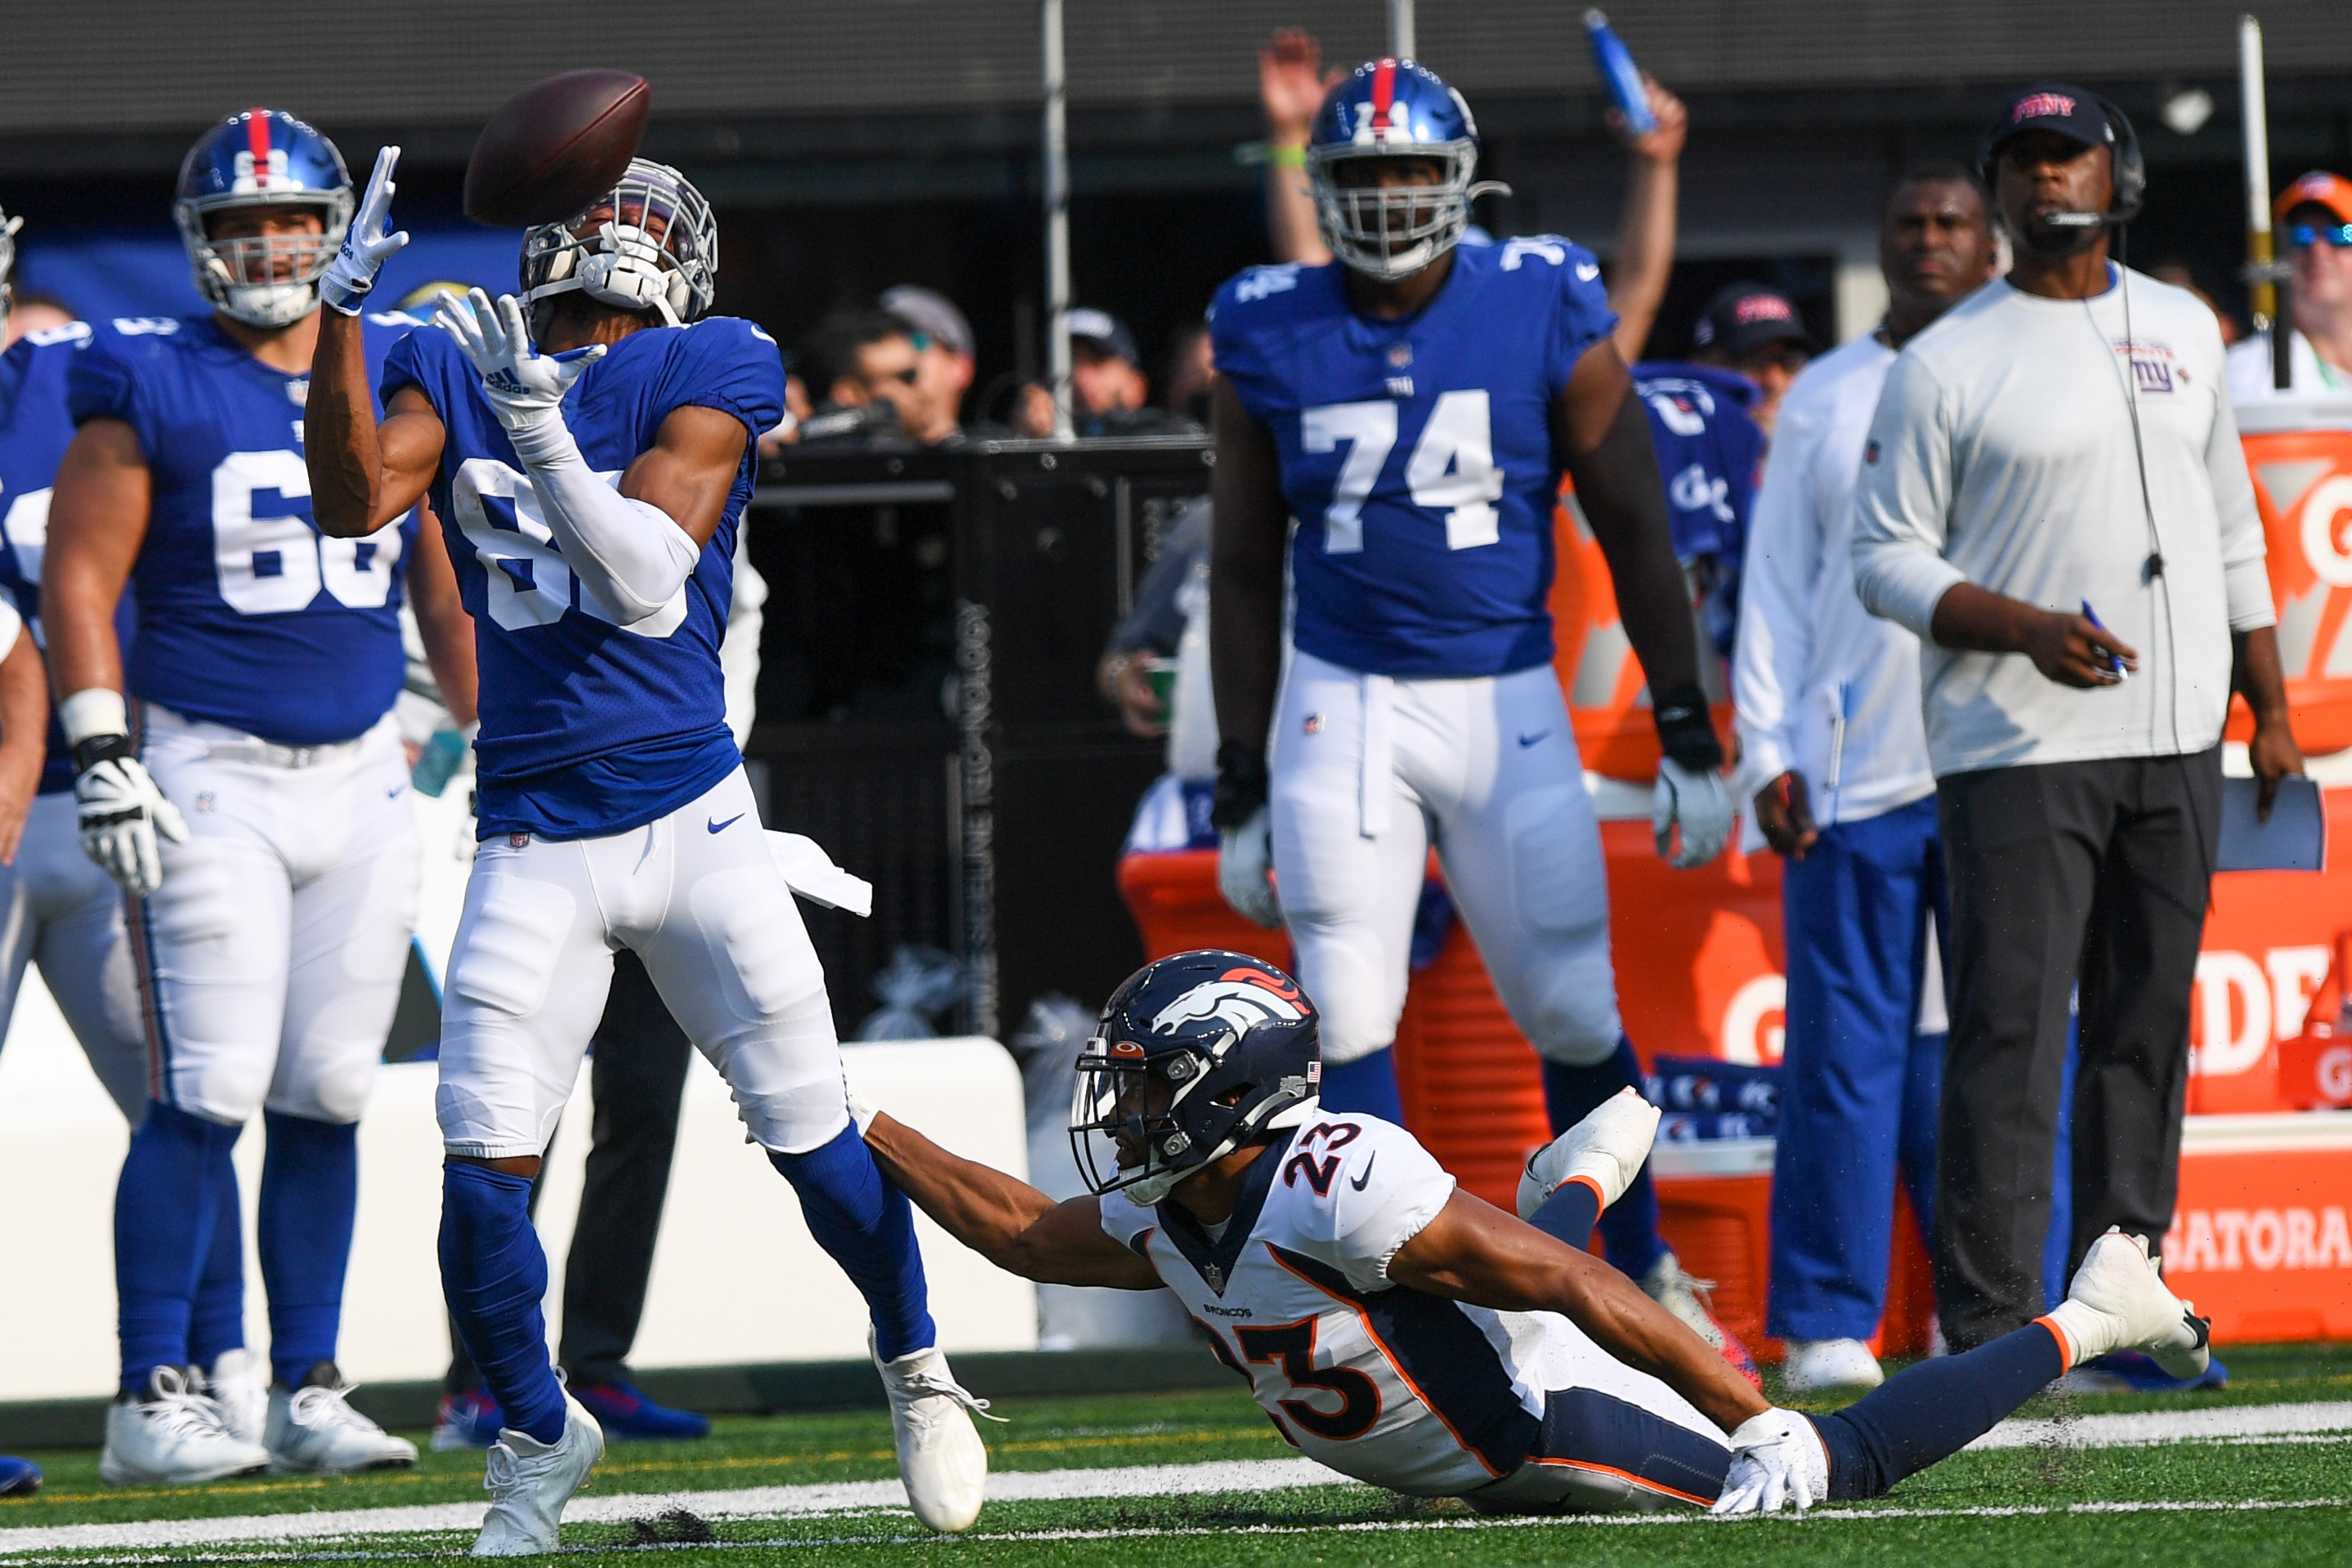 New York Giants wide receiver Darius Slayton (86) makes a catch defended by Denver Broncos cornerback Kyle Fuller (23) during the first half at MetLife Stadium.